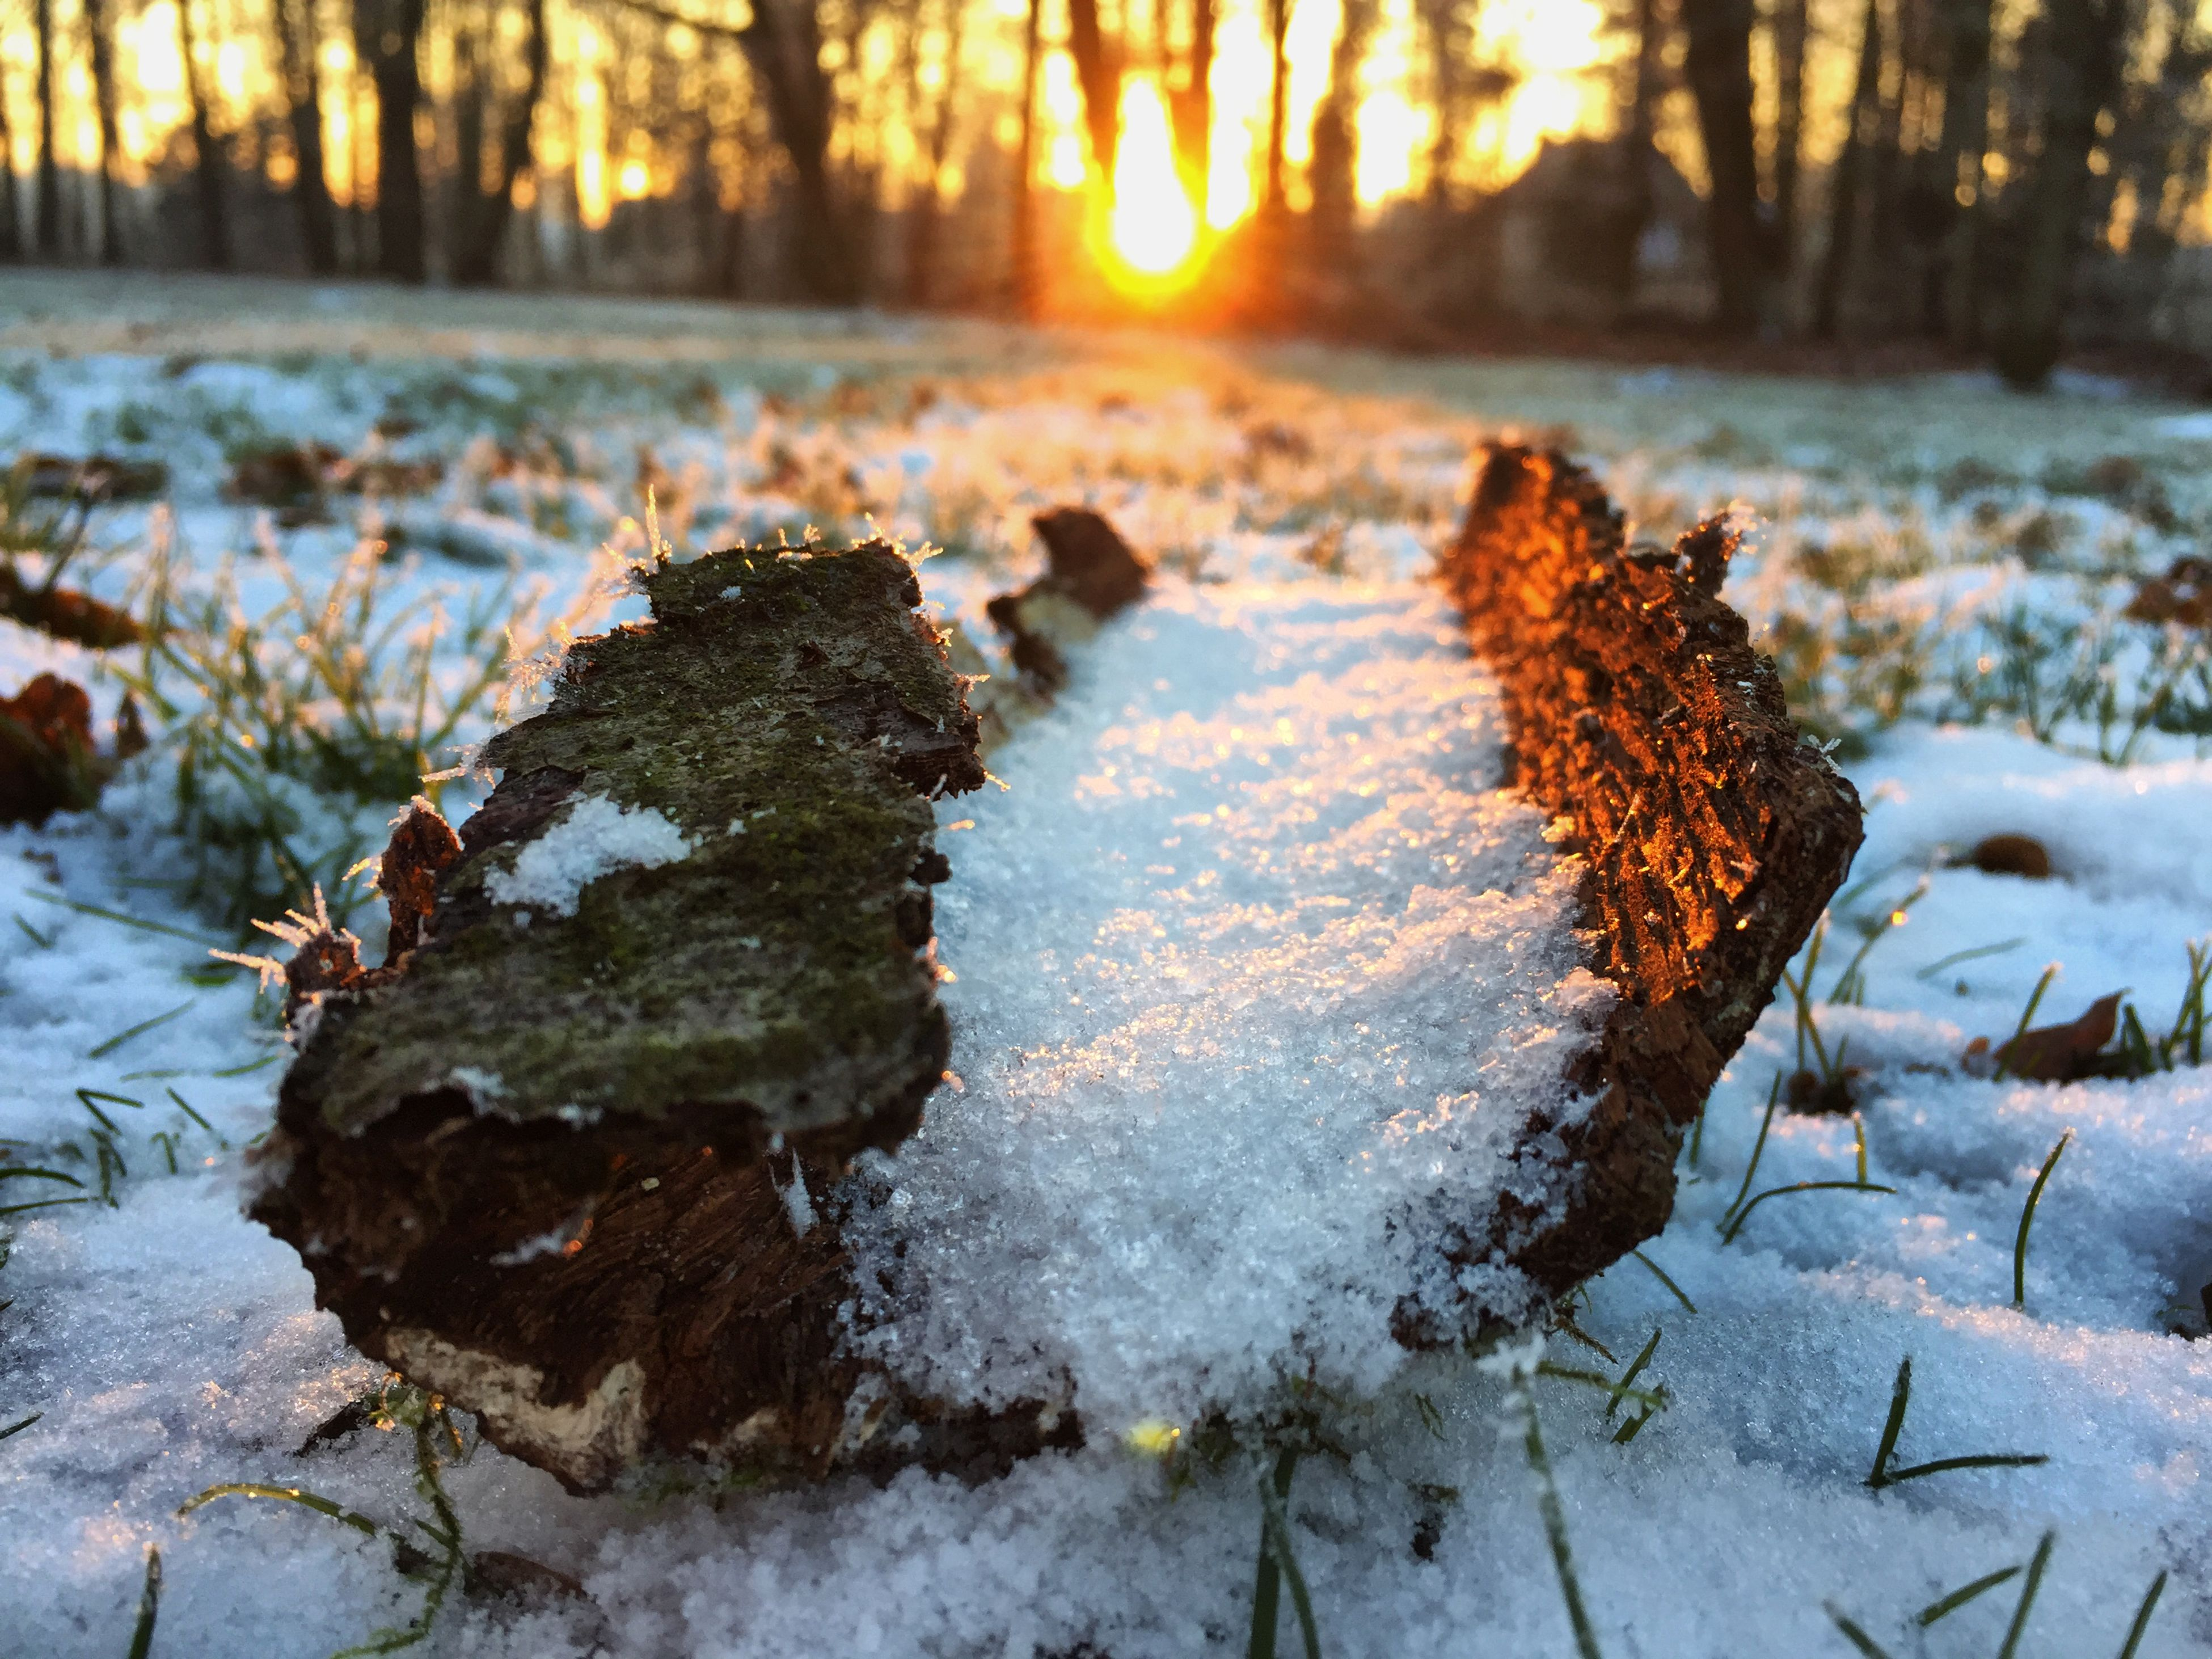 Snow On Driftwood During Sunset At Stadtpark Gutersloh